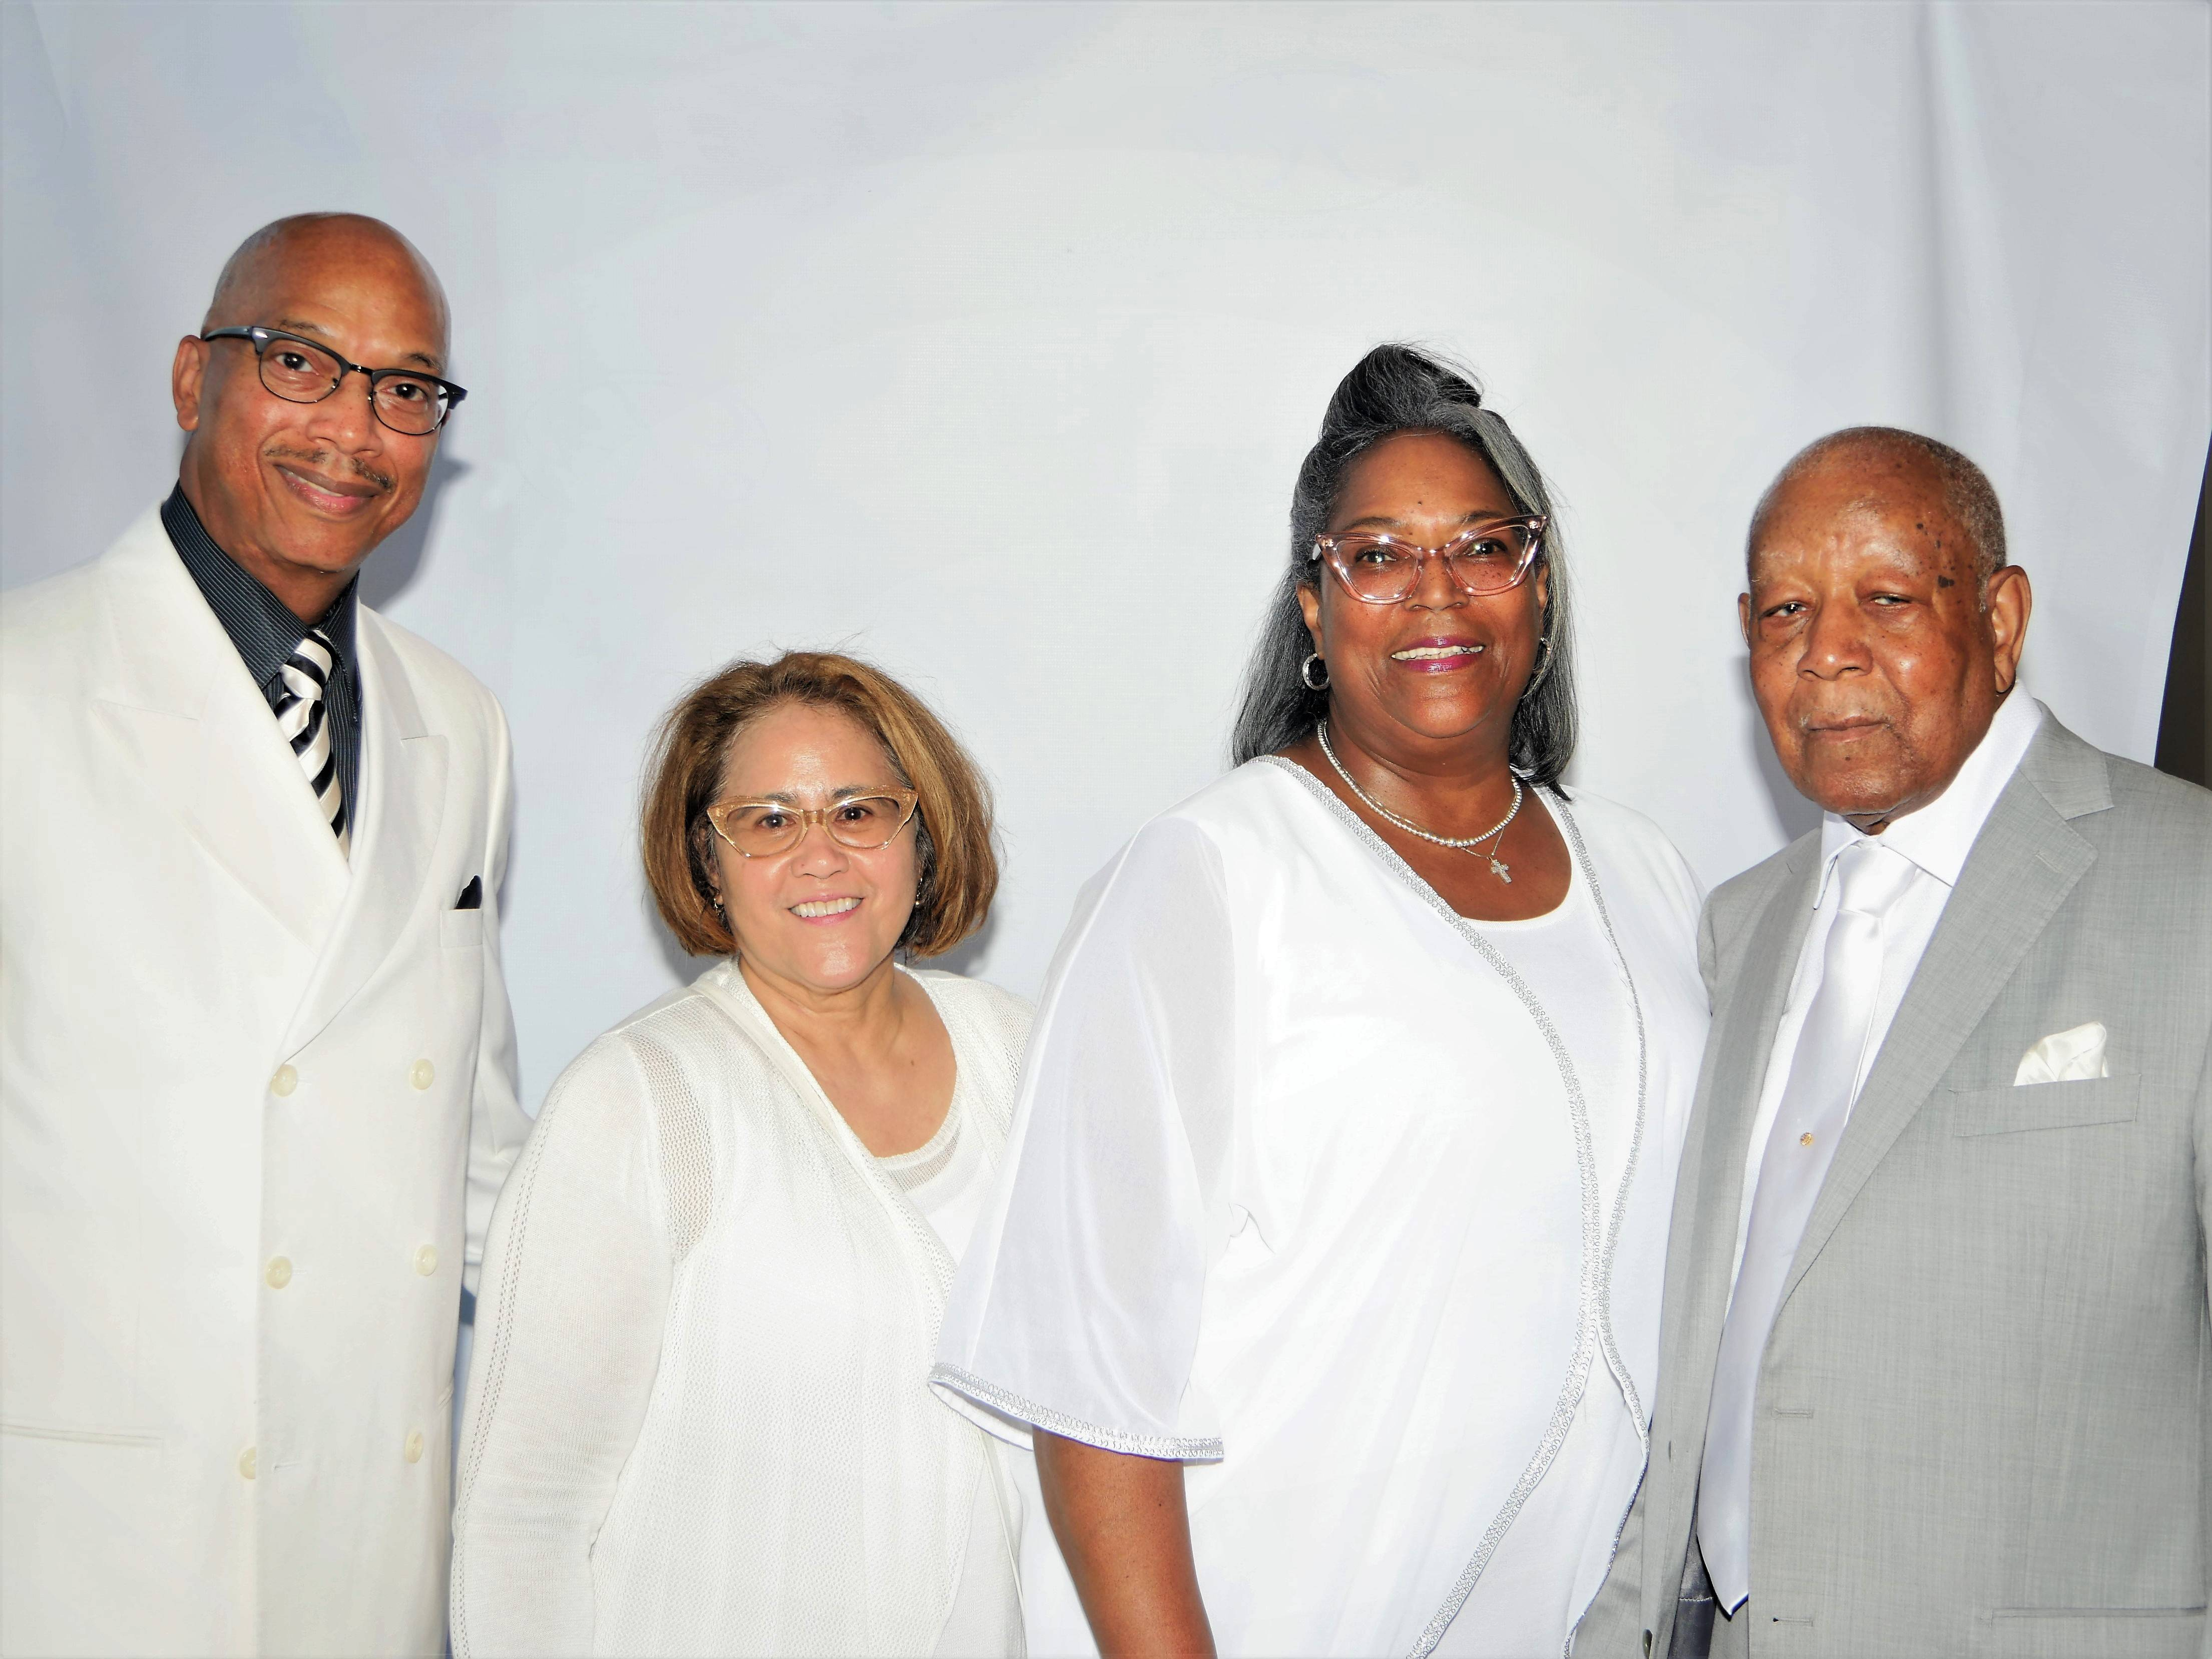 Honoree with close family